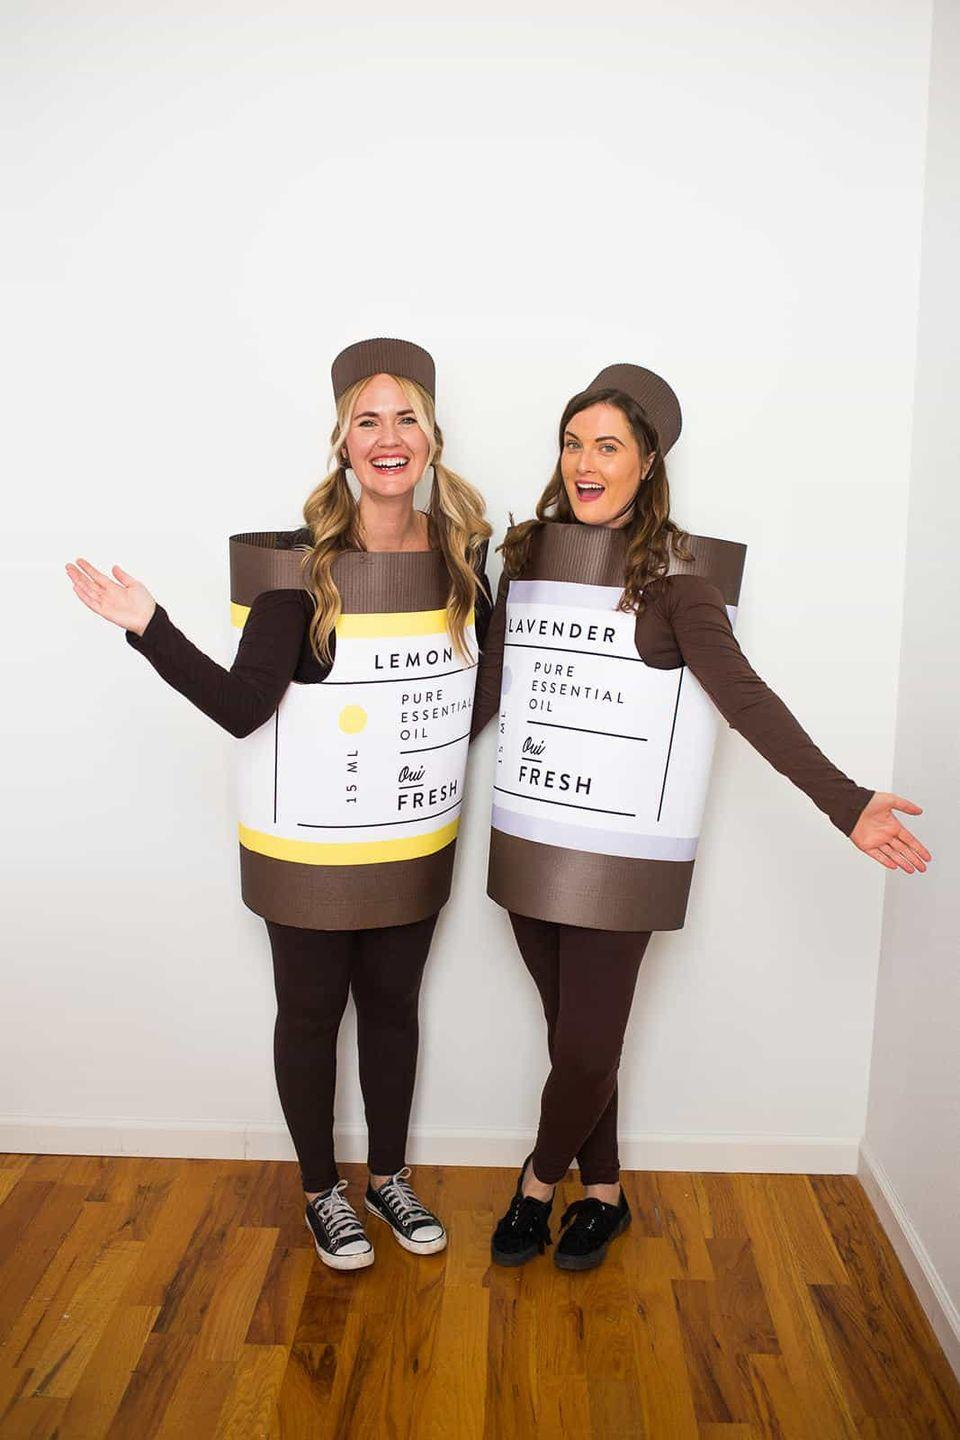 """<p>Chances are, your BFF is an <em>essential</em> person in your life. This essential oils costume is a punny take on that sentiment.</p><p><strong>Get the tutorial at <a href=""""https://abeautifulmess.com/2018/10/essential-oil-halloween-costume.html"""" rel=""""nofollow noopener"""" target=""""_blank"""" data-ylk=""""slk:A Beautiful Mess"""" class=""""link rapid-noclick-resp"""">A Beautiful Mess</a>.</strong></p><p><strong><a class=""""link rapid-noclick-resp"""" href=""""https://www.amazon.com/Aviditi-SF36-Single-Corrugated-Length/dp/B0085LJB9M/?tag=syn-yahoo-20&ascsubtag=%5Bartid%7C10050.g.21349110%5Bsrc%7Cyahoo-us"""" rel=""""nofollow noopener"""" target=""""_blank"""" data-ylk=""""slk:SHOP CARDBOARD ROLLS"""">SHOP CARDBOARD ROLLS</a><br></strong></p>"""